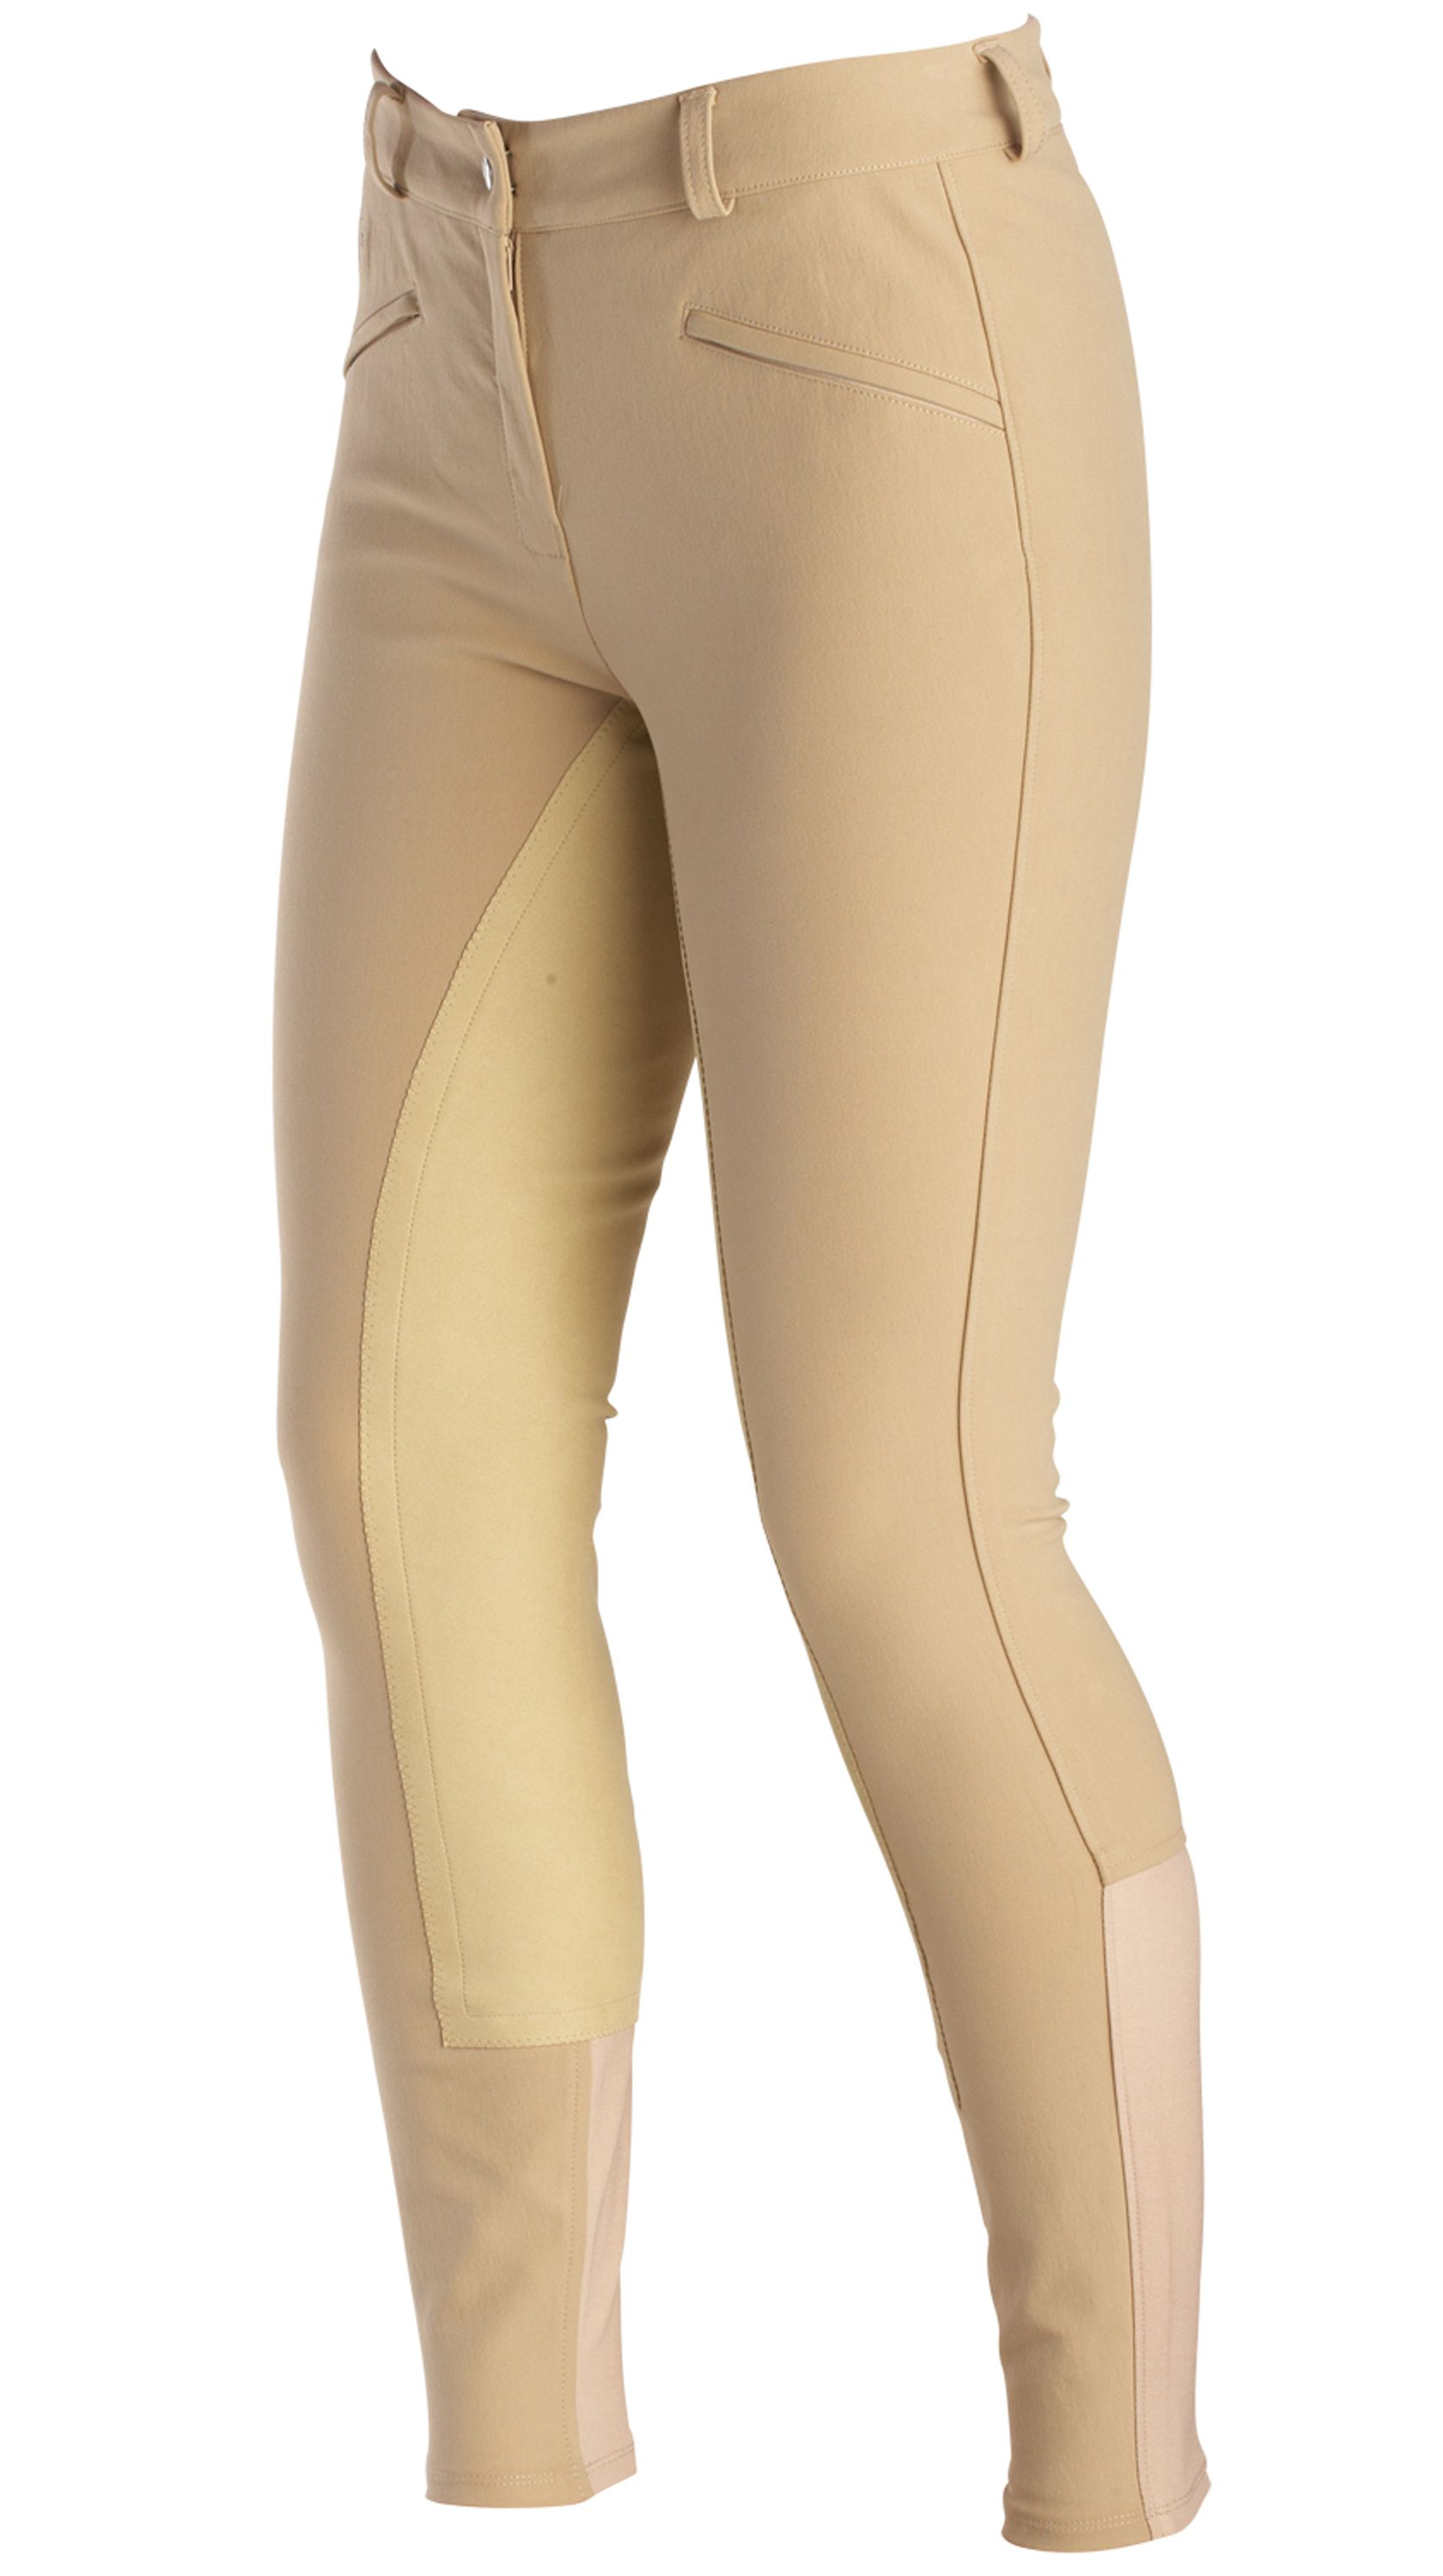 Ariat Ladies Performer Full Seat Breeches -Navy/36 Regular